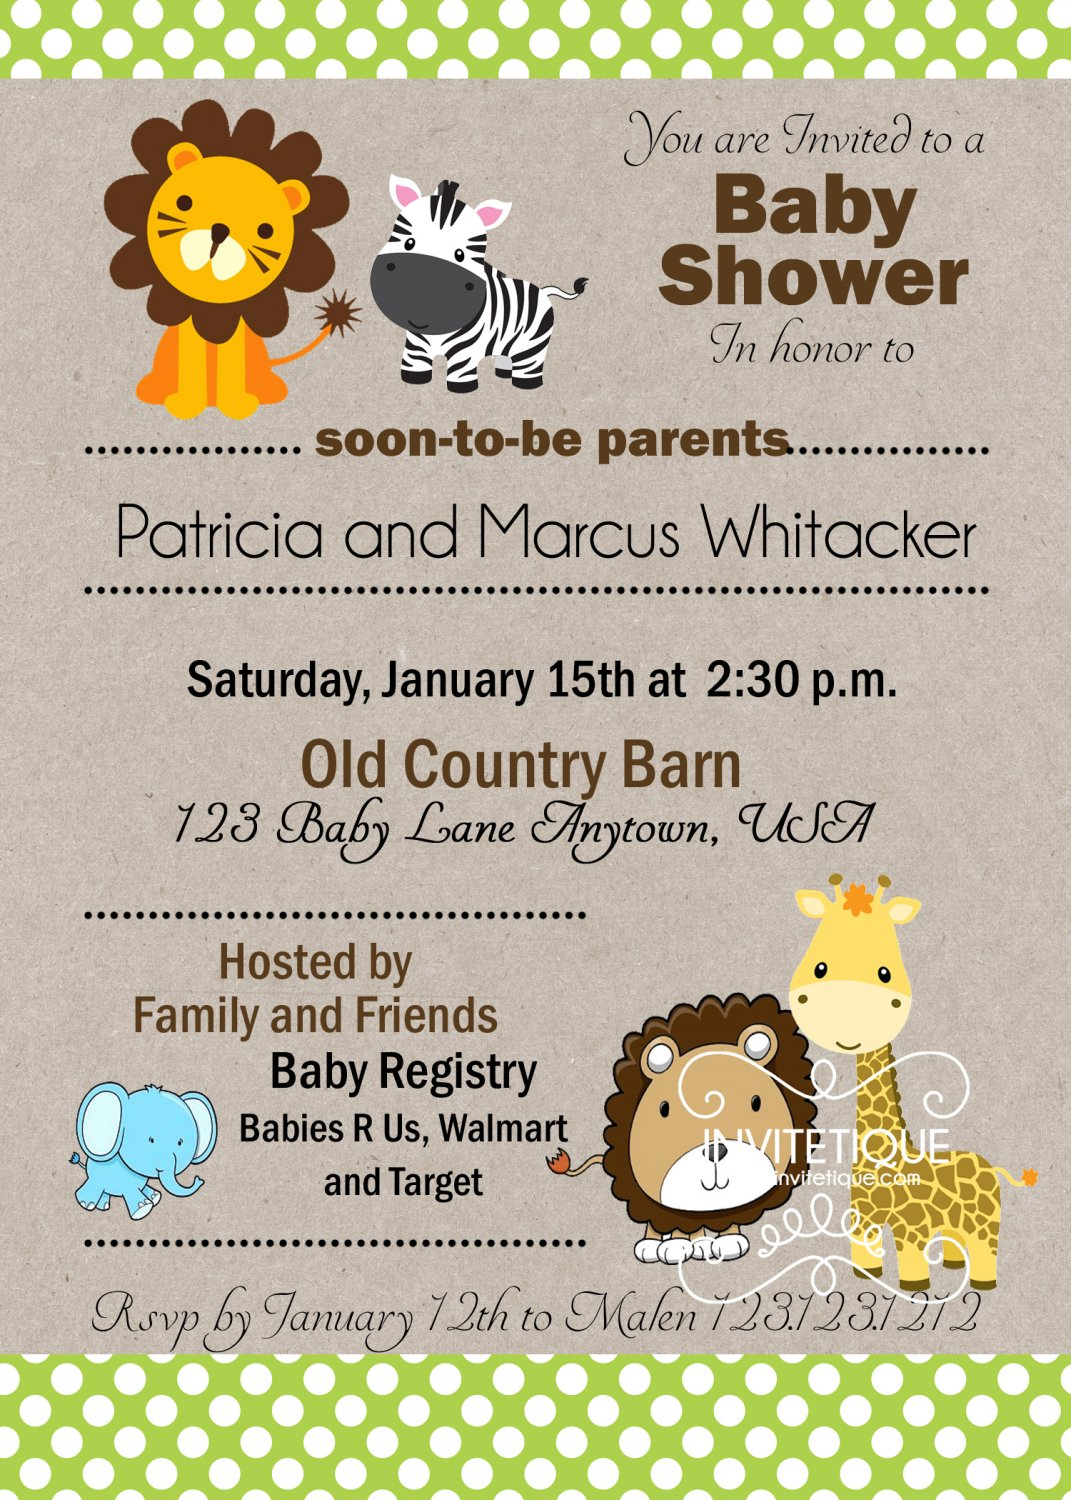 Zoo, Jungle, Safari Animals Green Polka Dots Baby Shower Invitation - Customizable